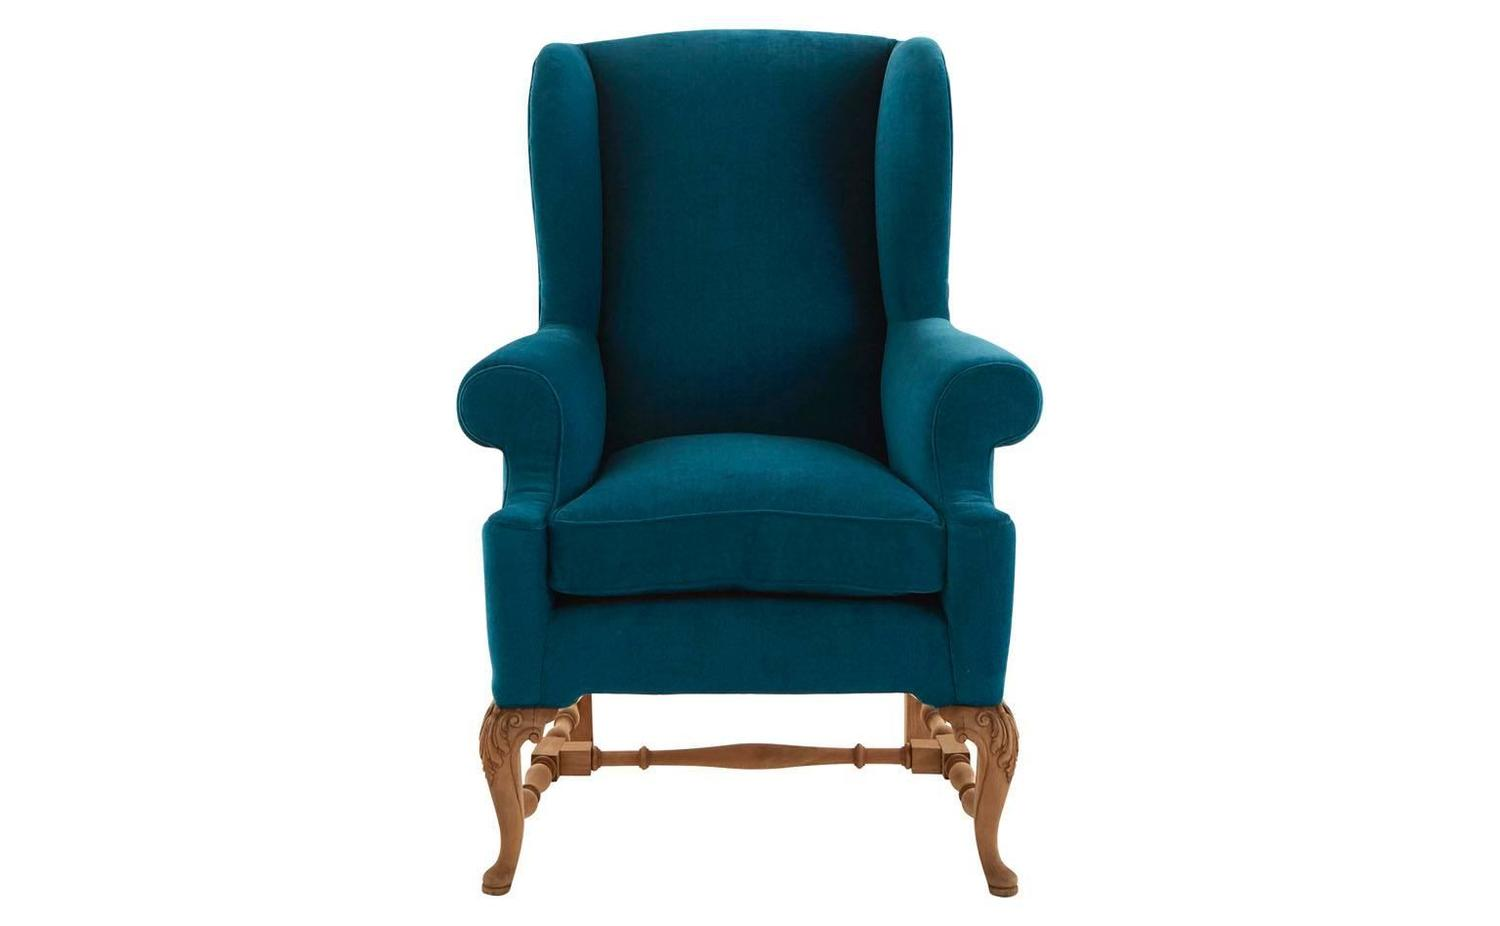 Antique French Wing Chair For Sale at 1stdibs